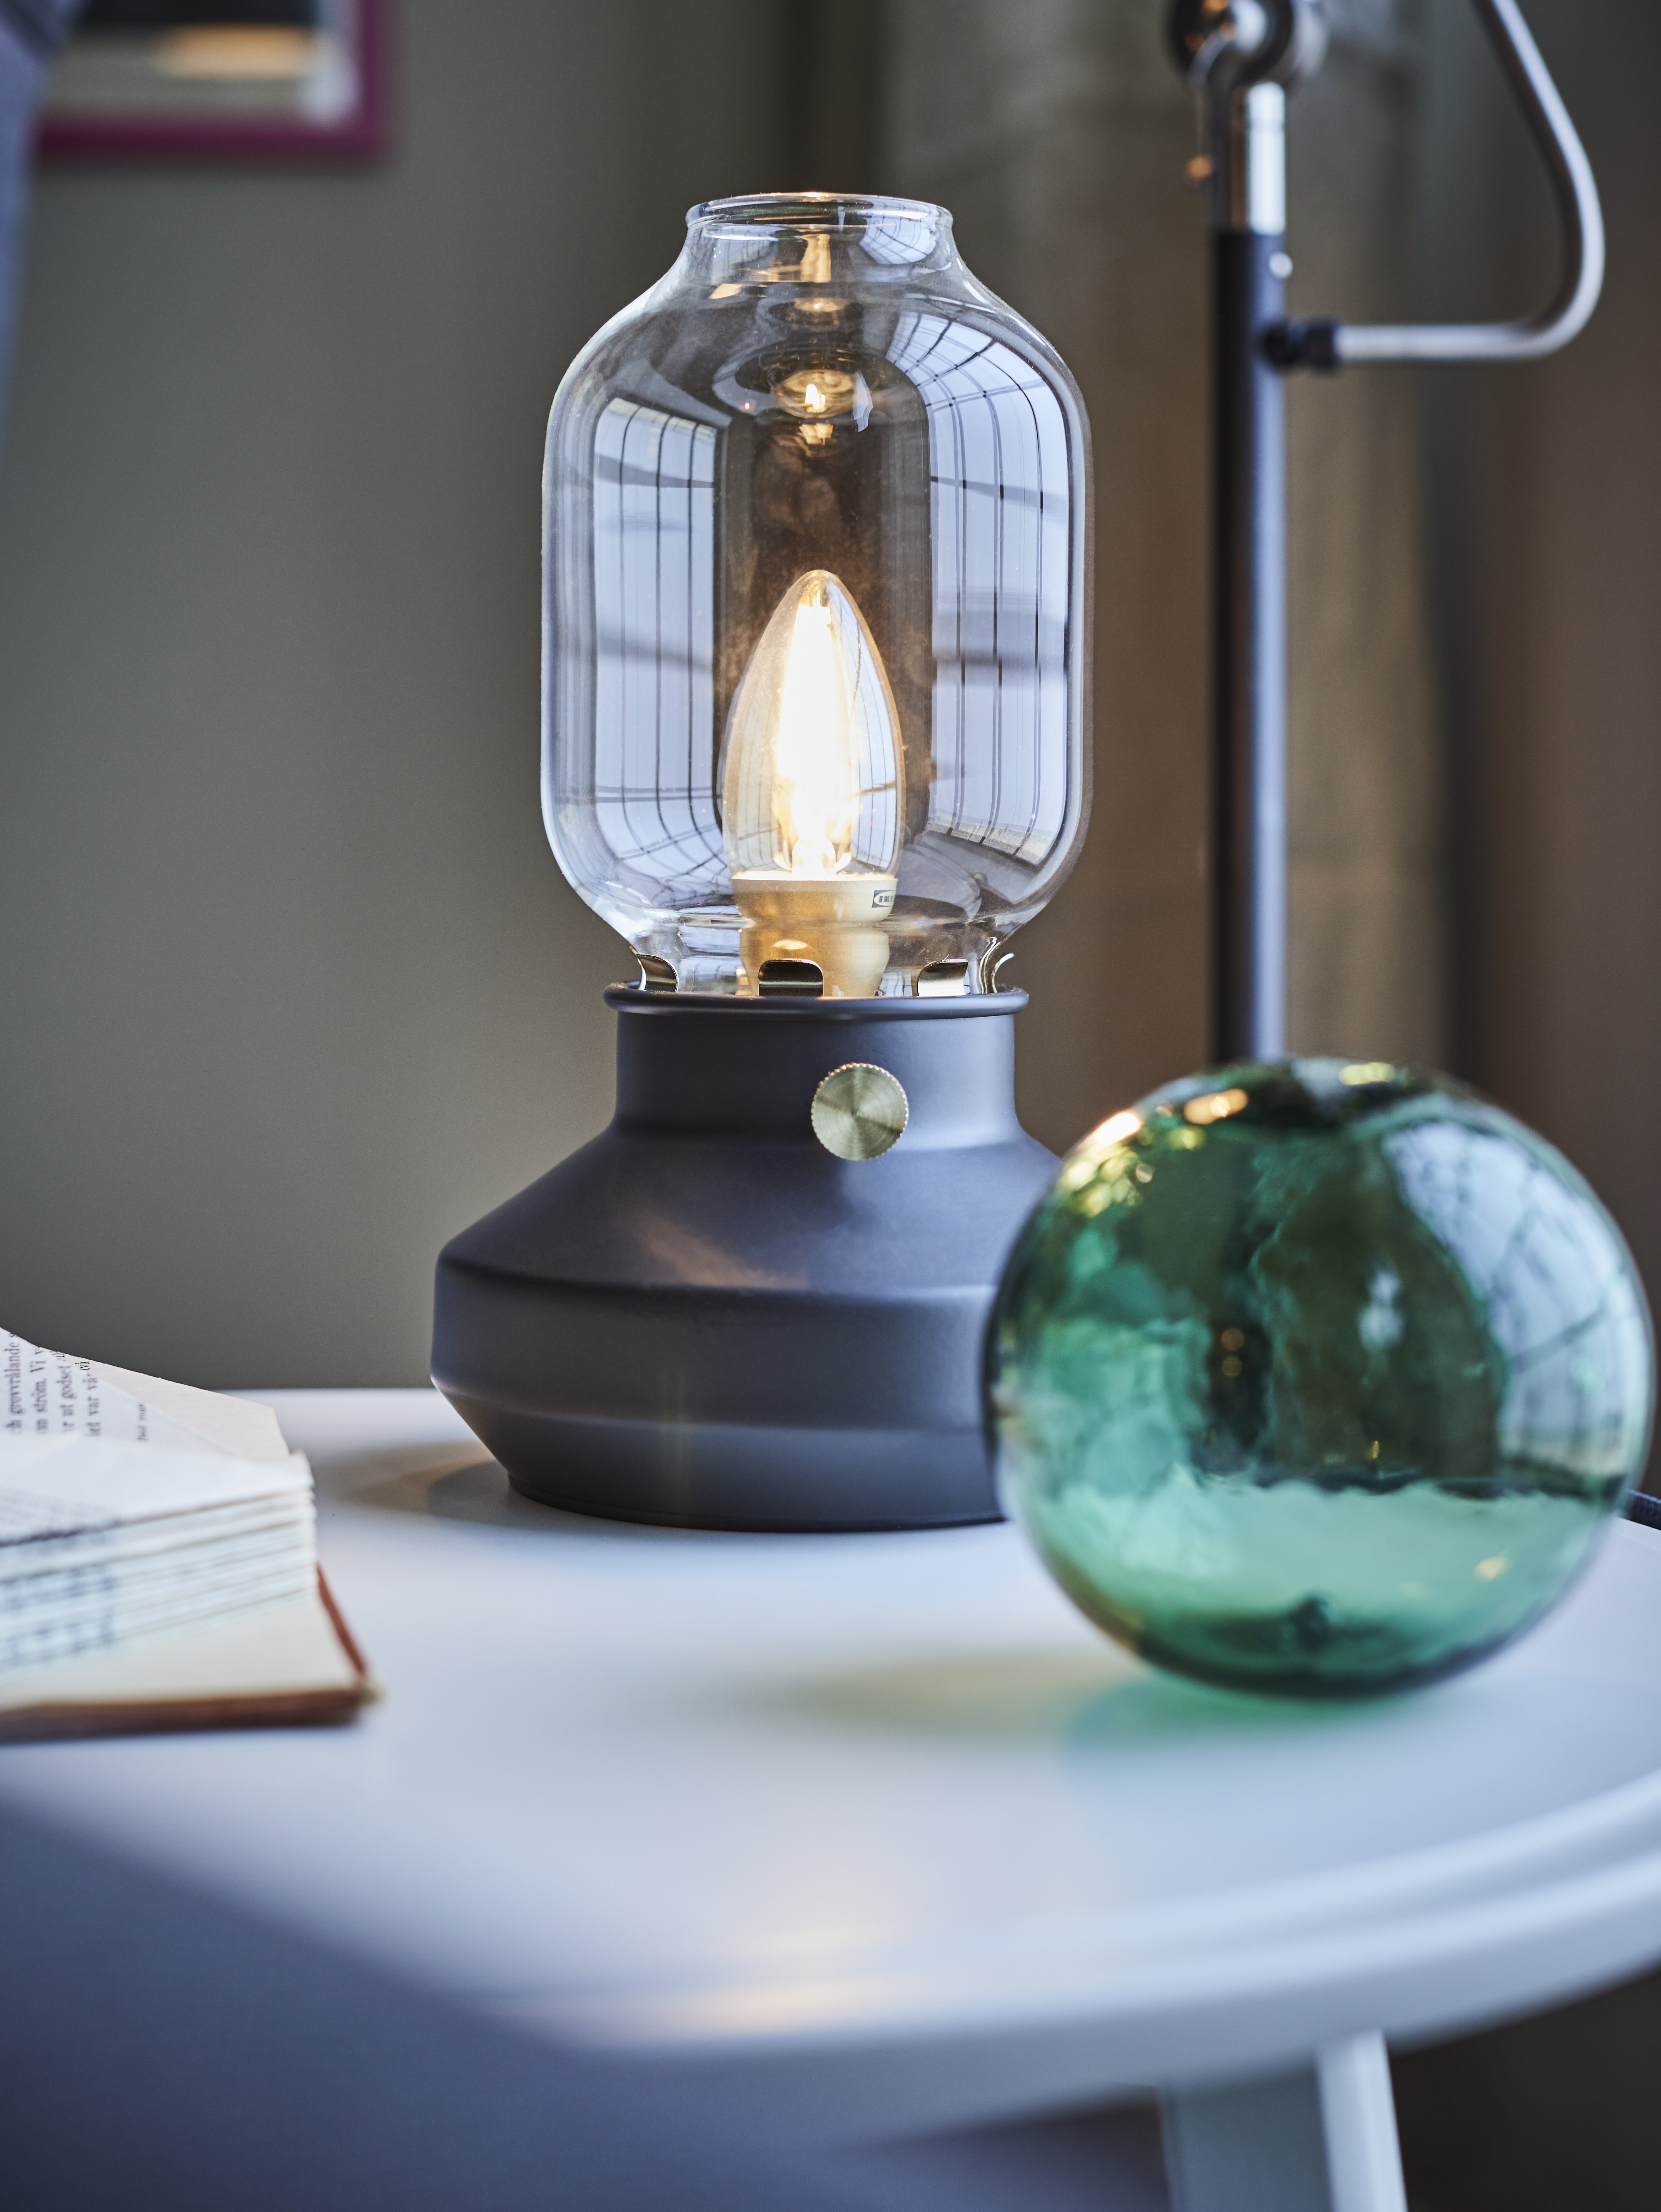 A table has an anthracite TÄRNABY table lamp with a glass shade, visible bulb and steel base resembling a kerosene lamp.